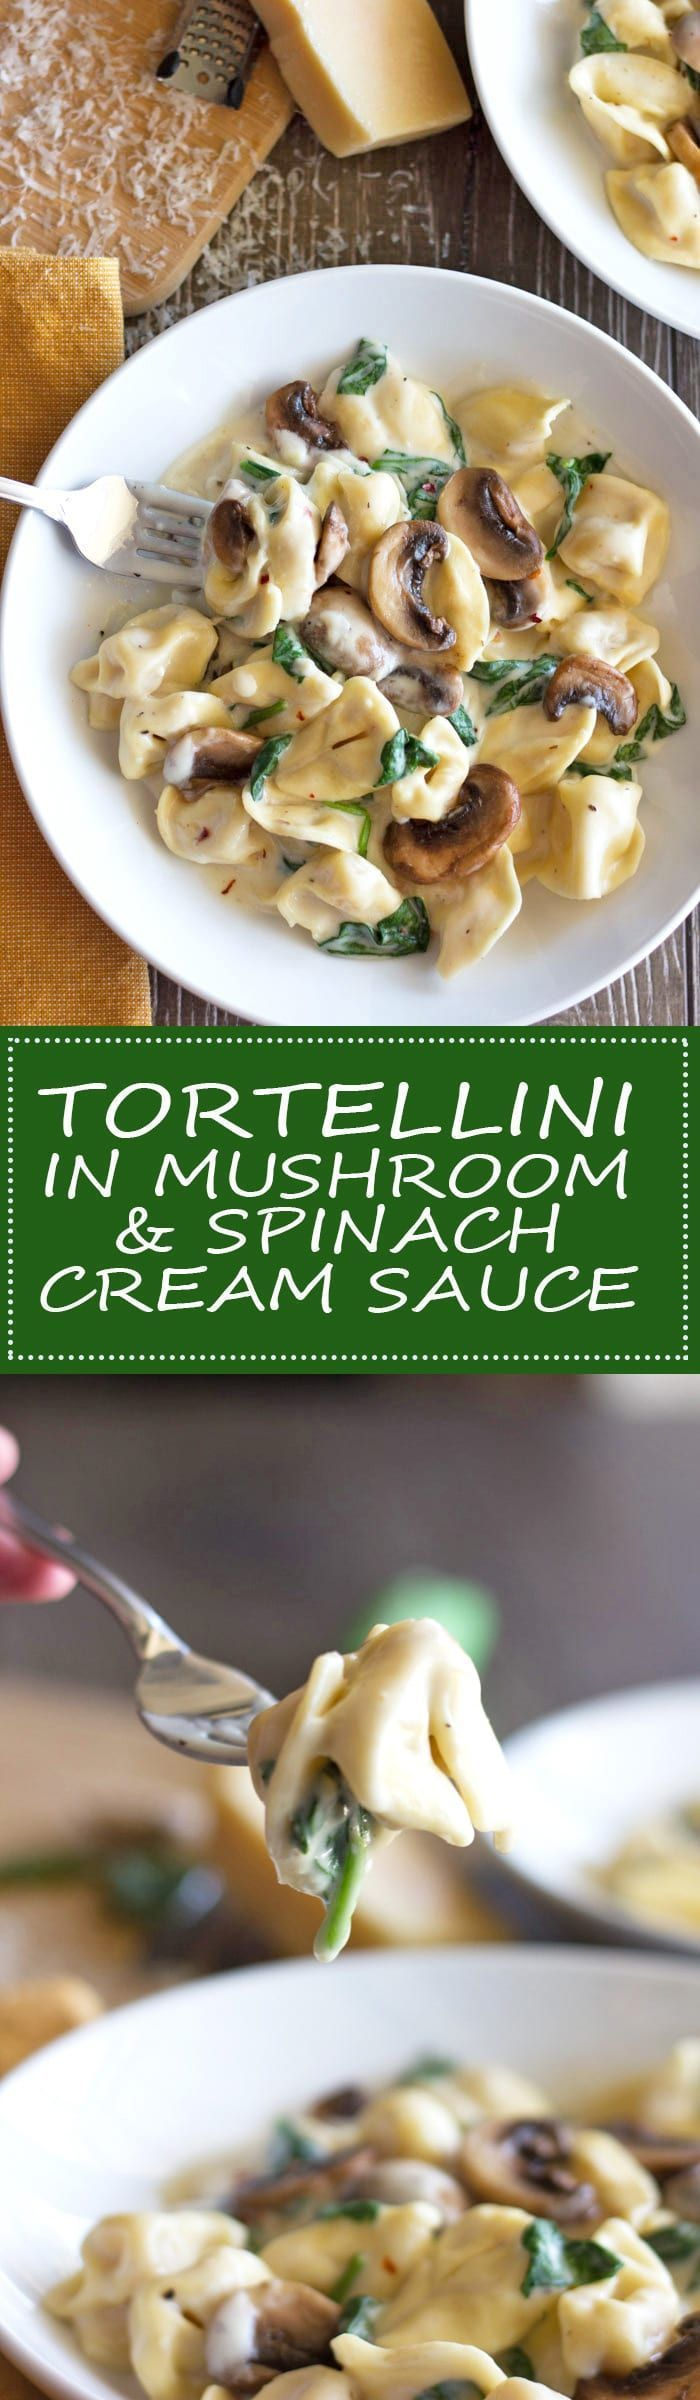 Tortellini Pasta in Mushroom Spinach Cream Sauce. Quick, easy and delicious! Ready in under 30 minutes!